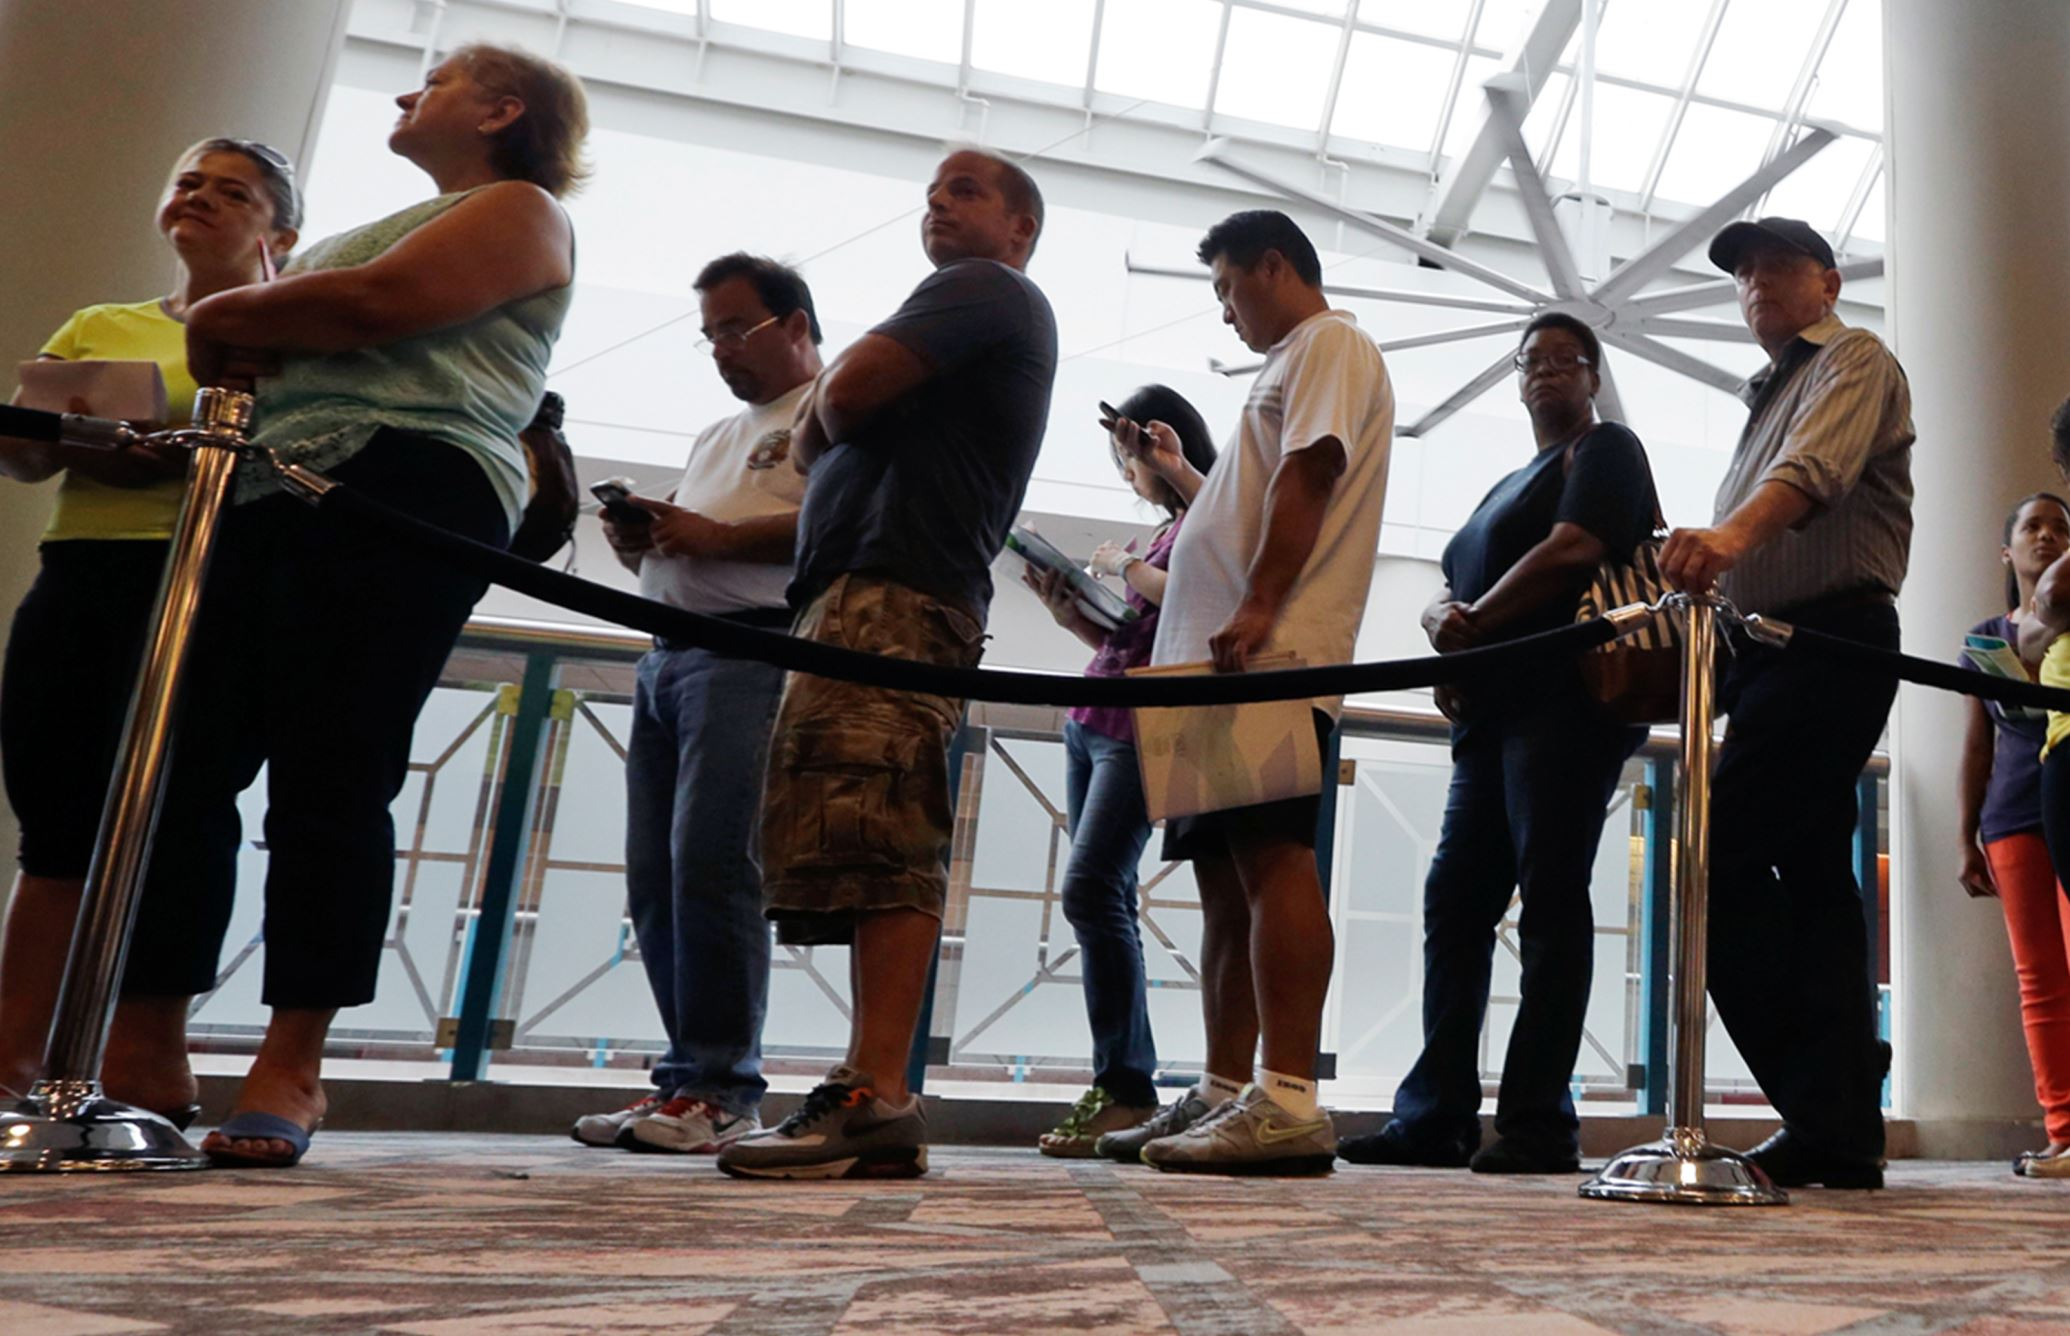 ME website struggles as new surge of workers file for jobless benefits